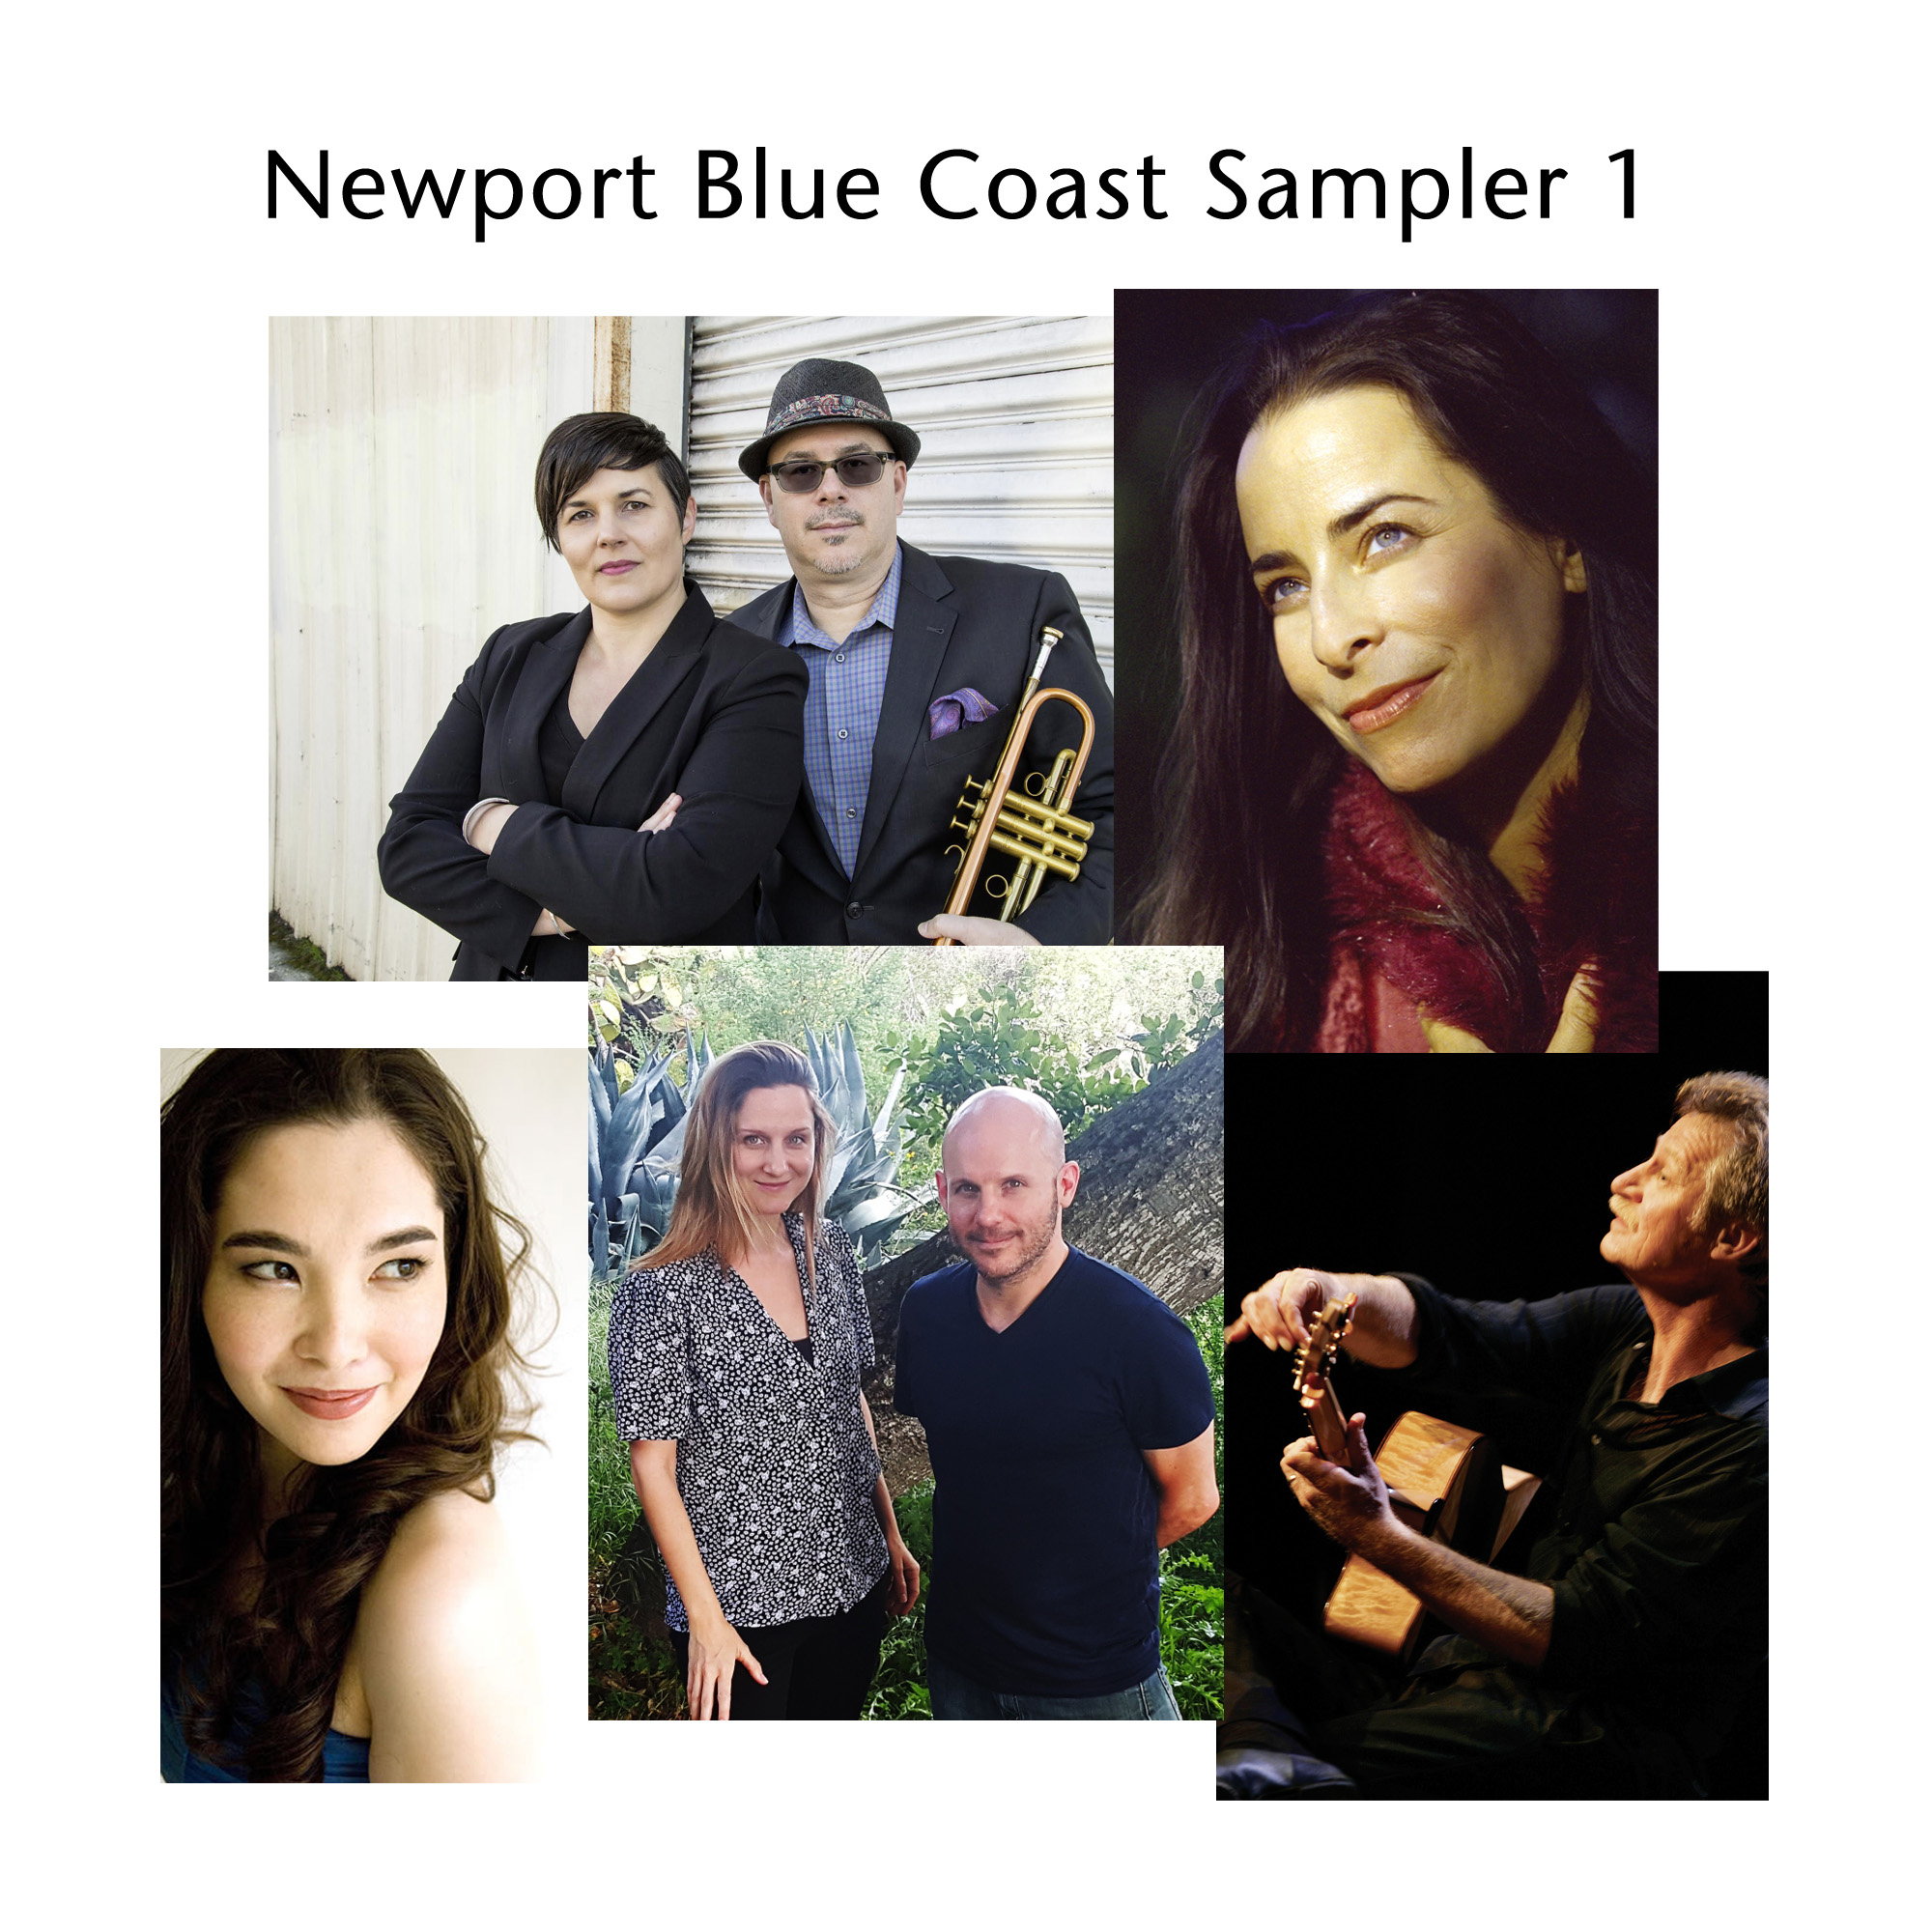 Newport Blue Coast Sampler 1 Cover image